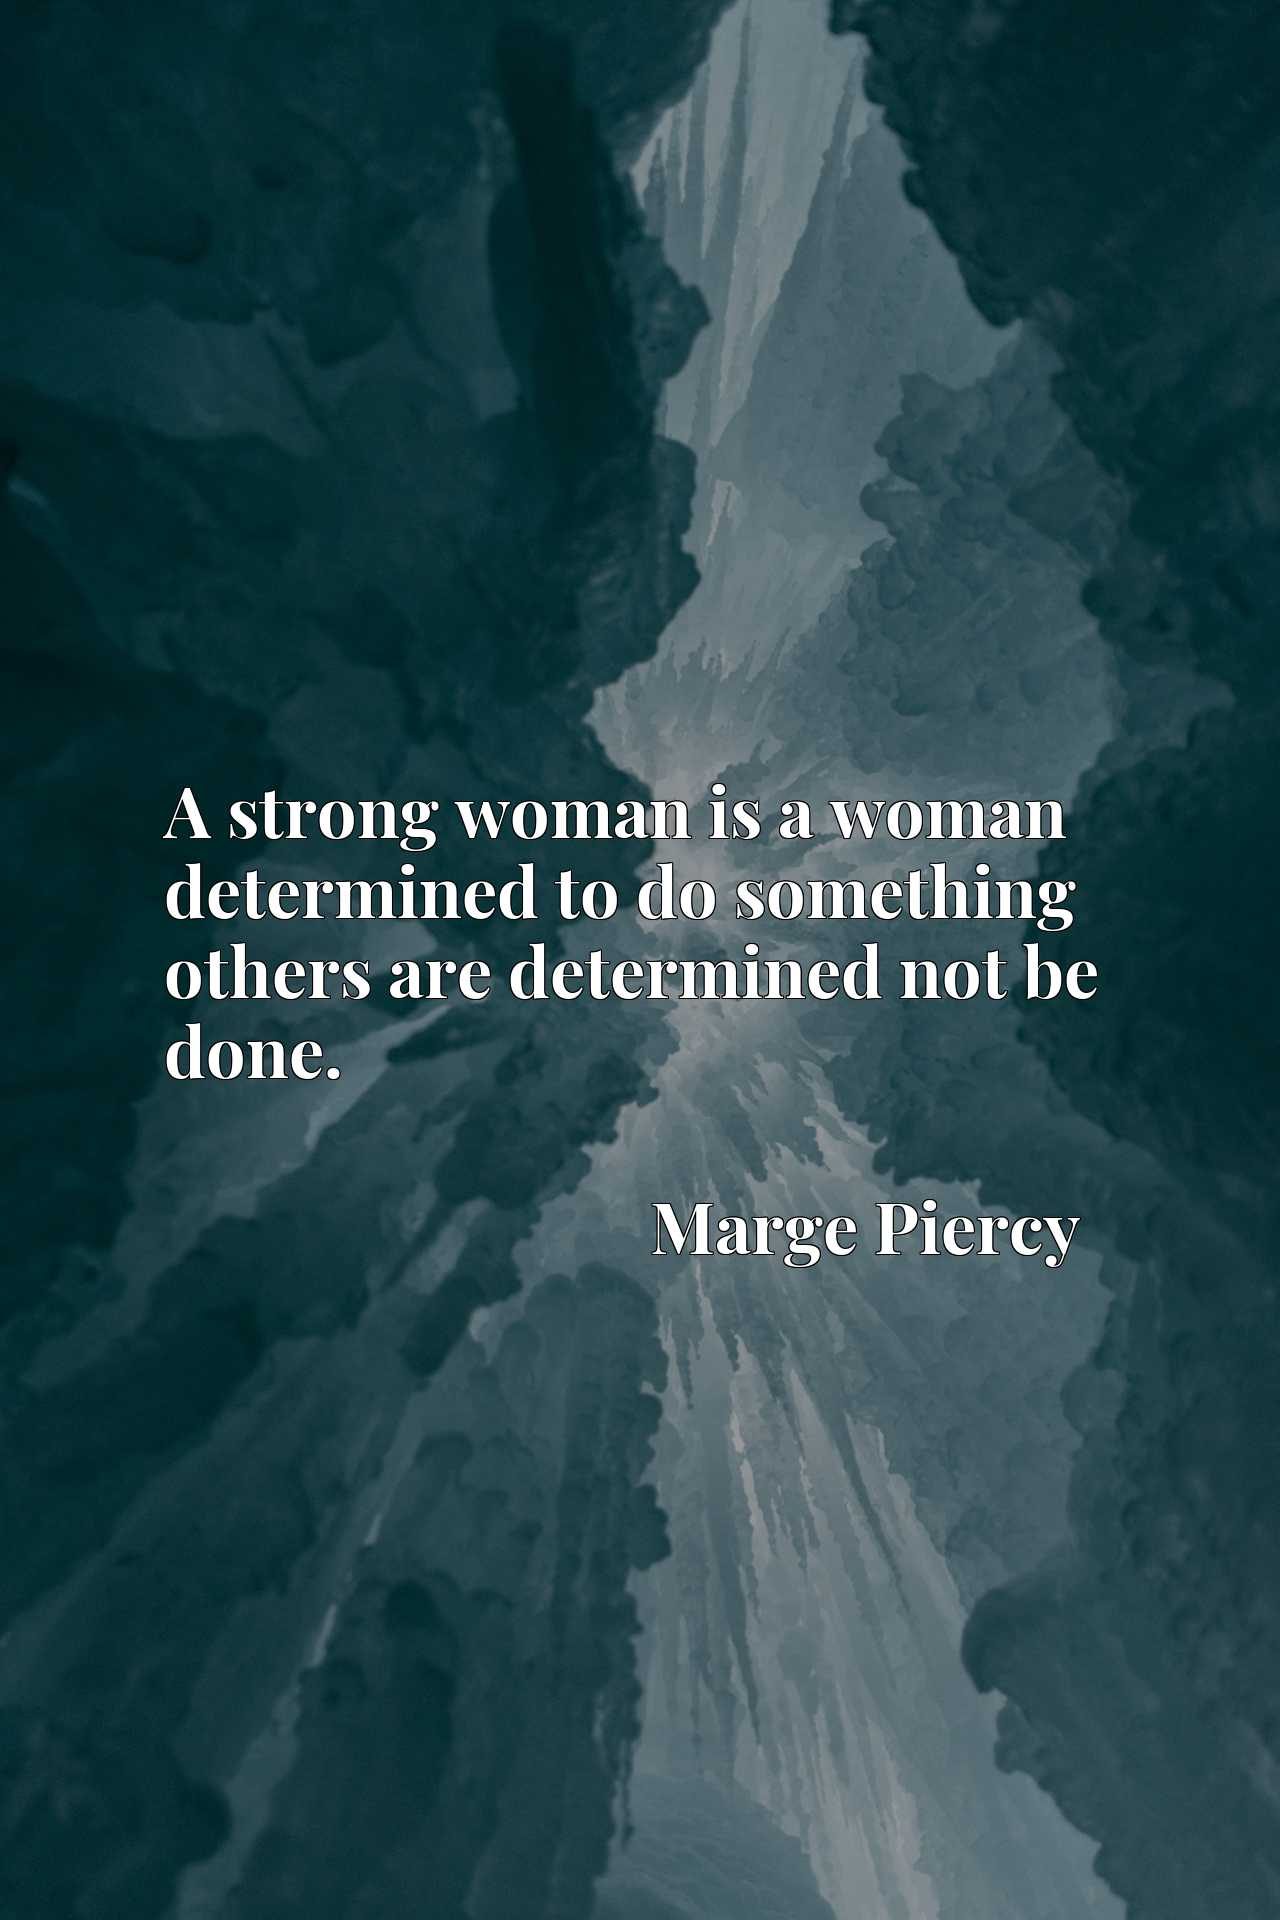 A strong woman is a woman determined to do something others are determined not be done.